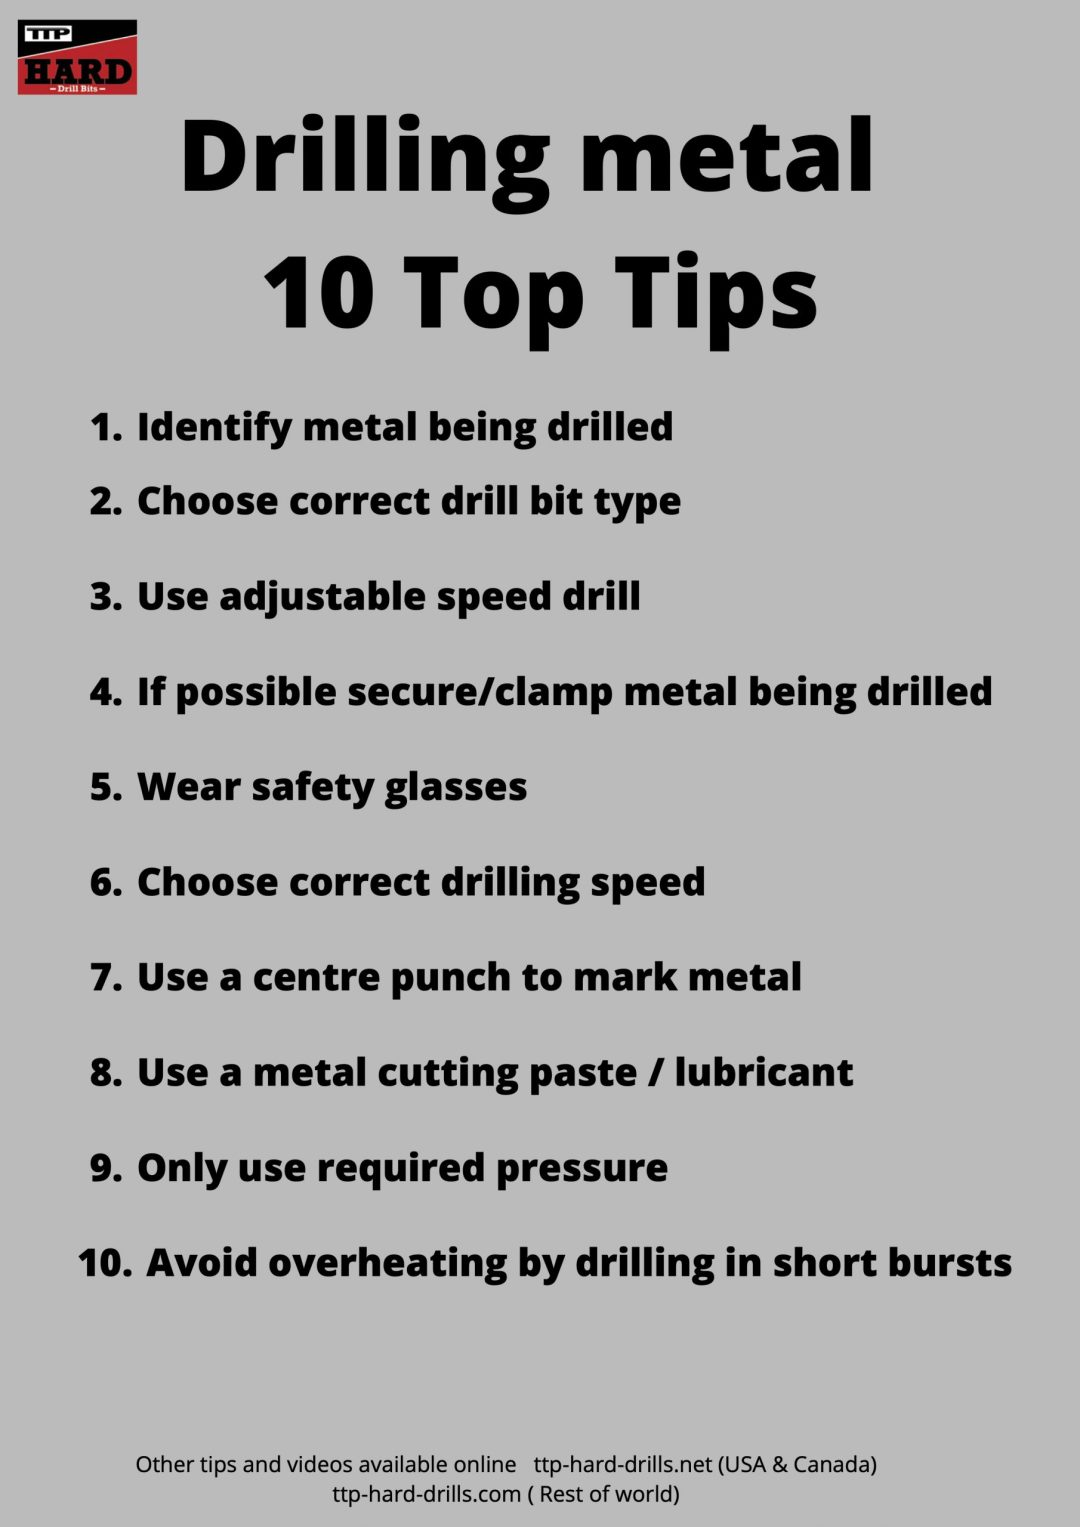 Drilling metal Top 10 Tips scaled - Drilling Metal: 10 Top Tips